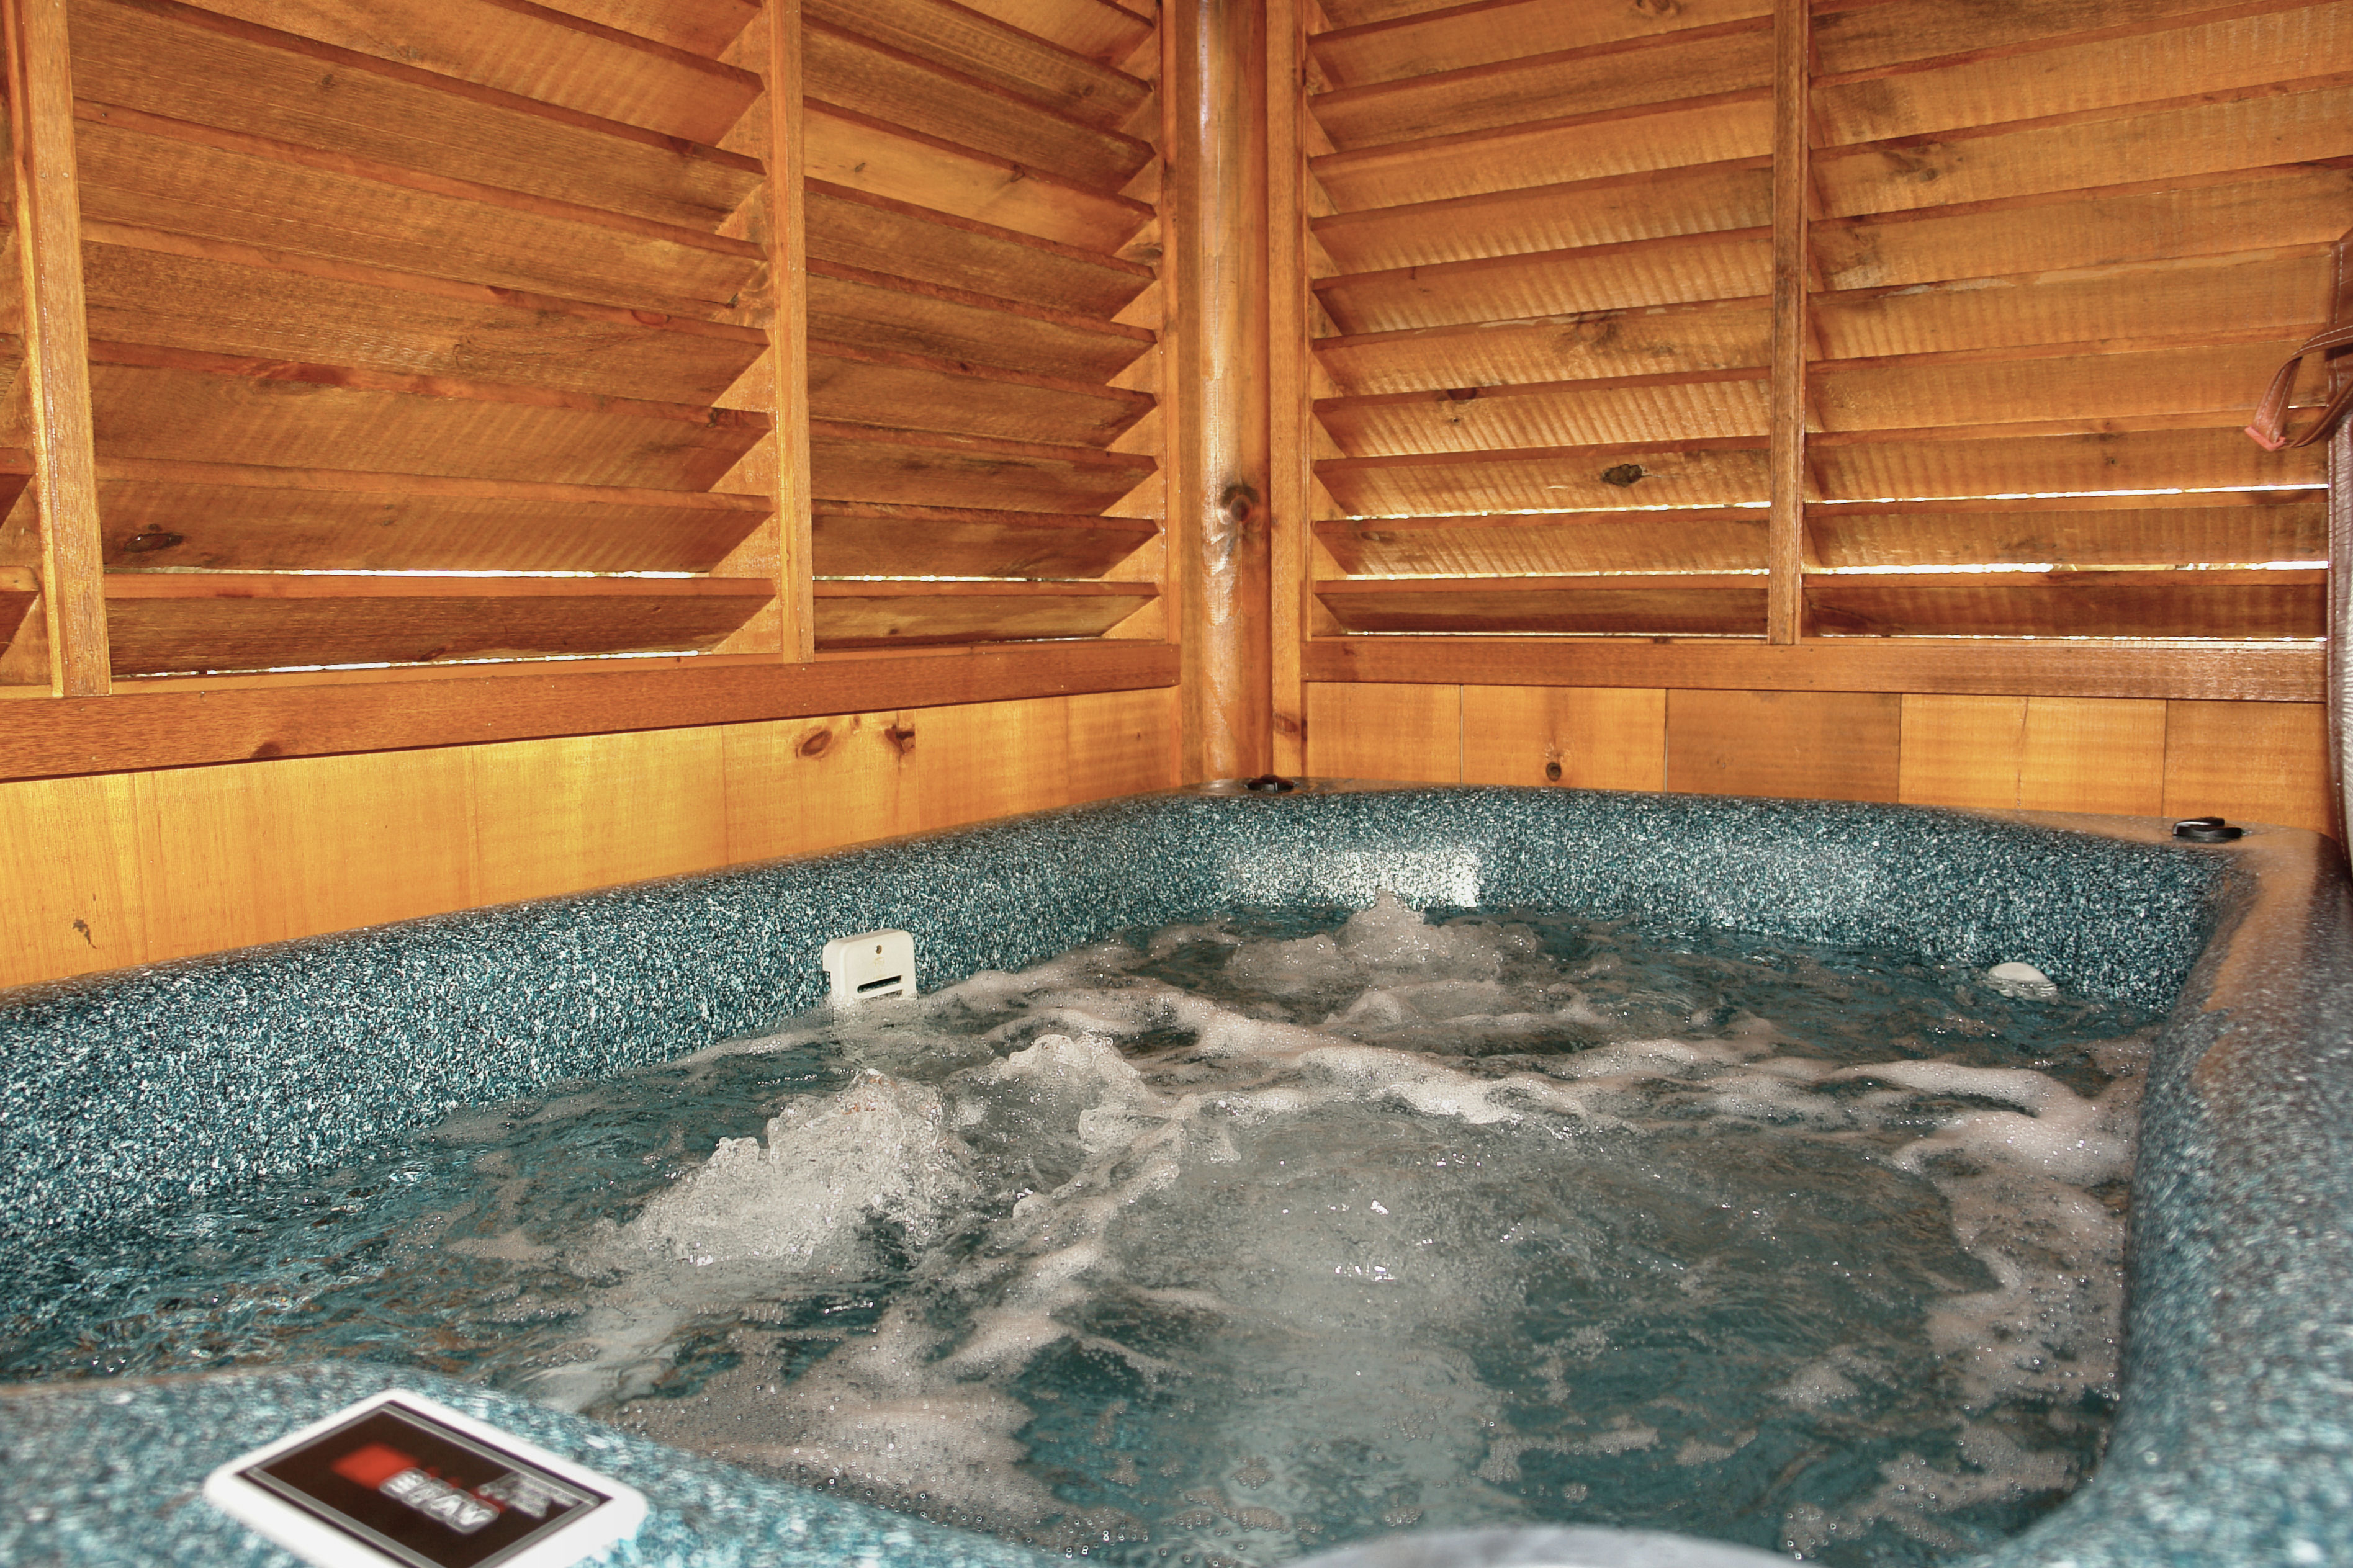 cabins tennessee inspirational in collection view lodge theater and indoor cabin majestic bedroom pool with gatlinburg awesome located room of